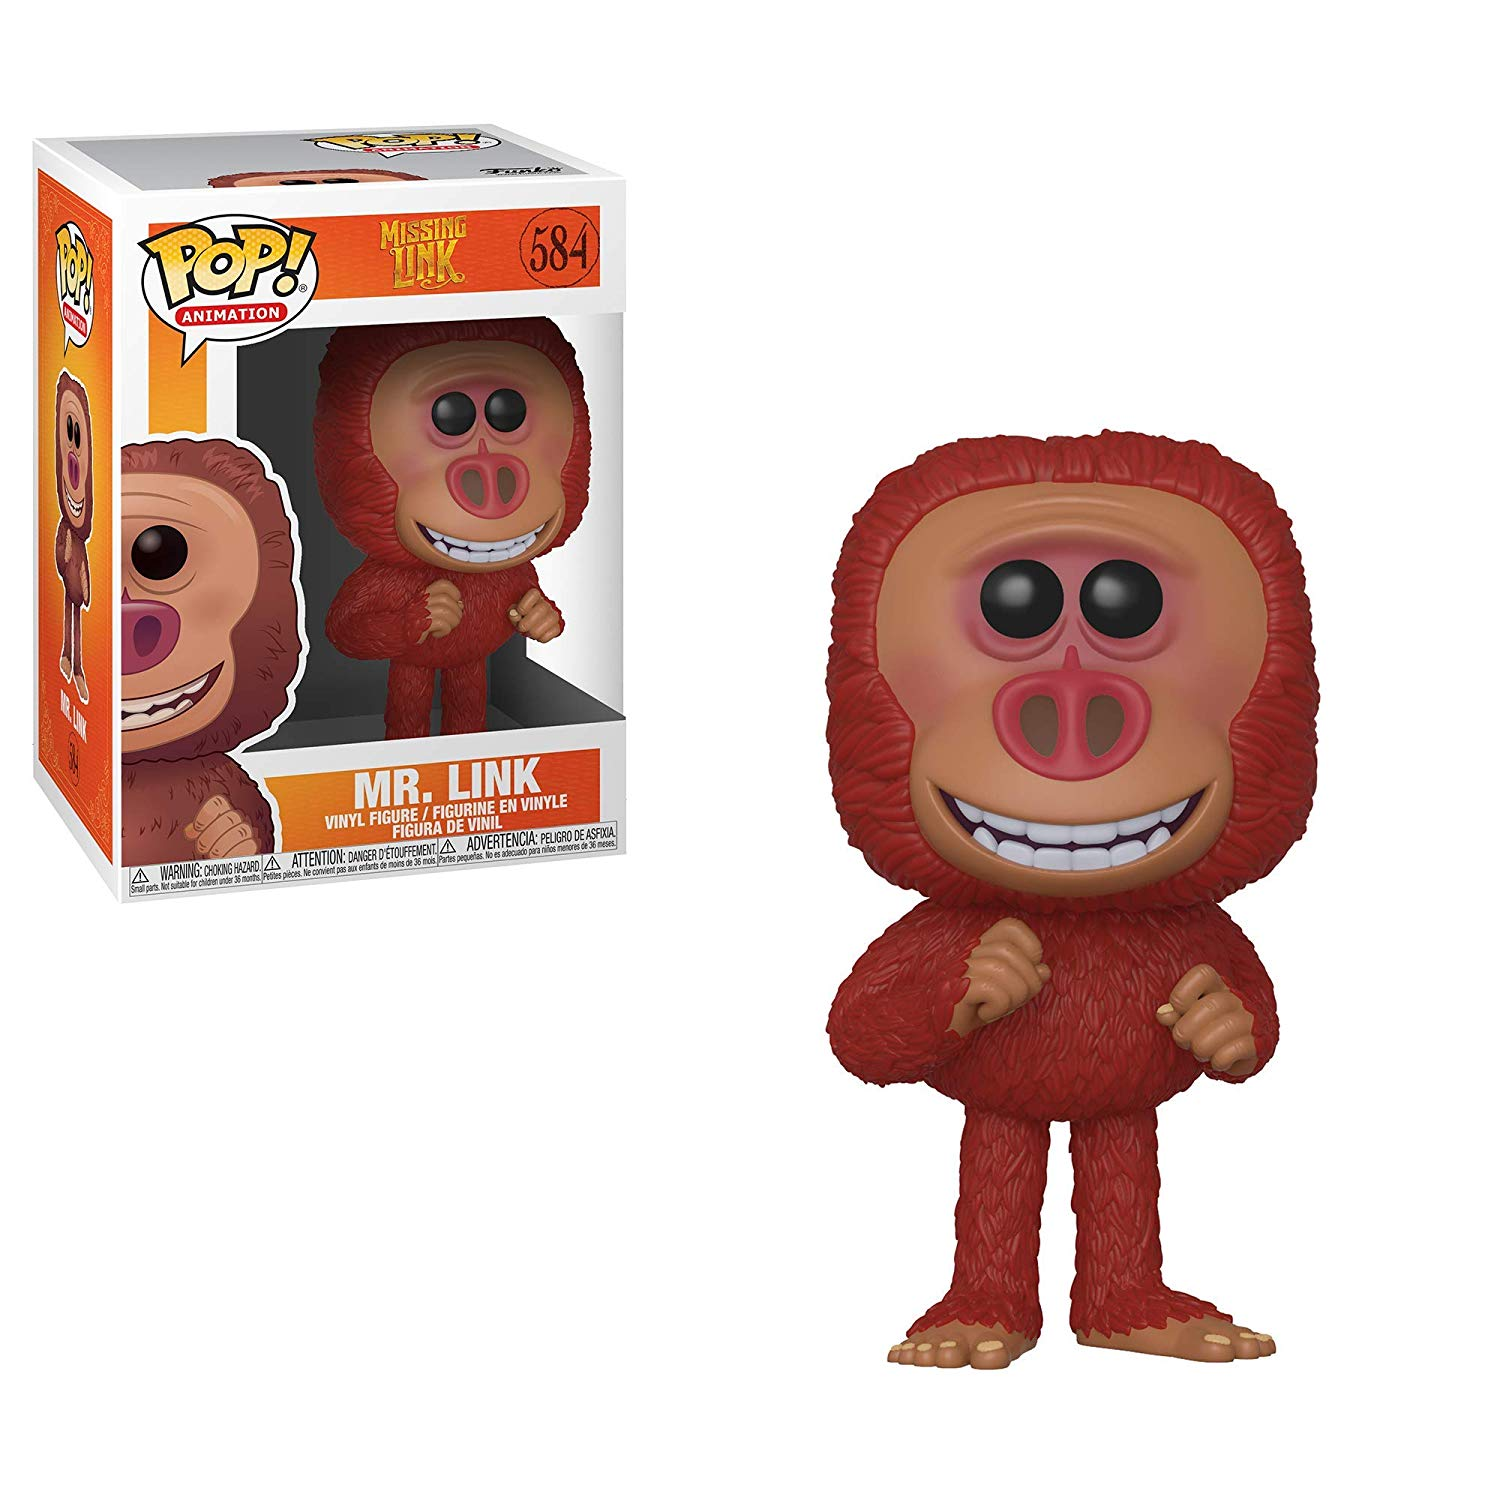 Pop! Animation Missing Link Vinyl Figure Mr. Link #584